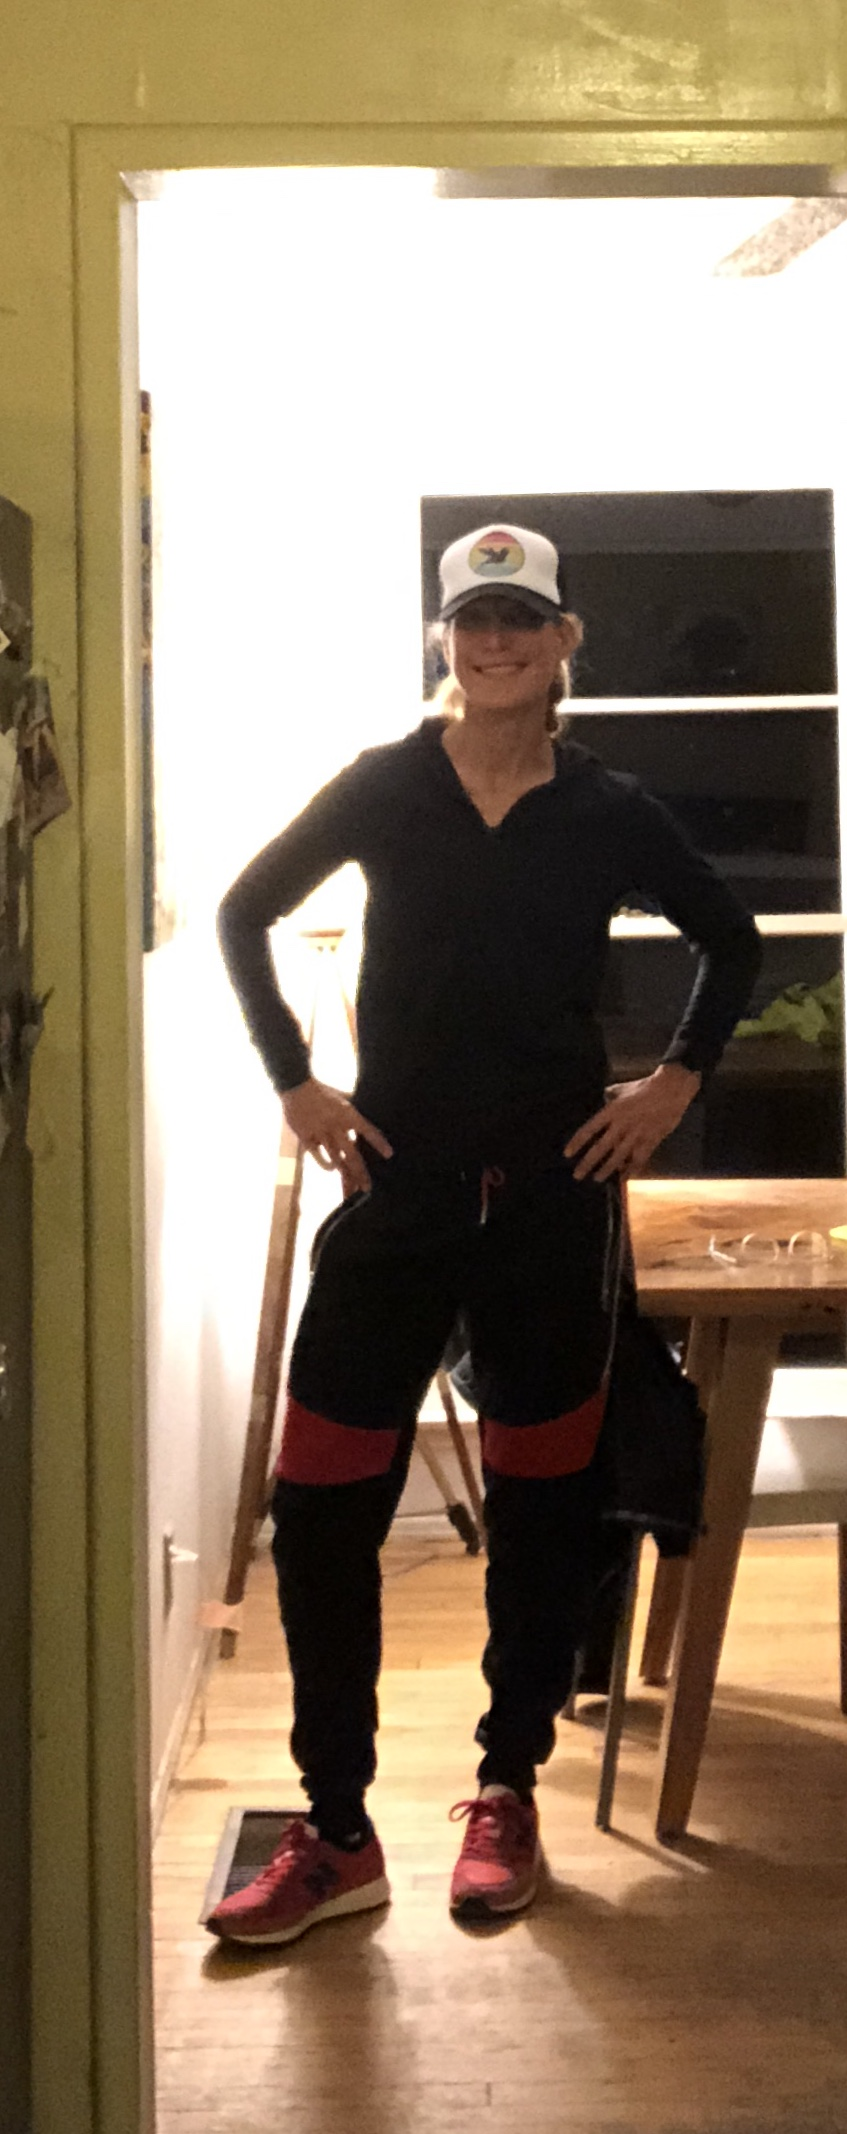 Rainy Pre-Race Outfit which I ended up keeping, because they had a gear-check.:)